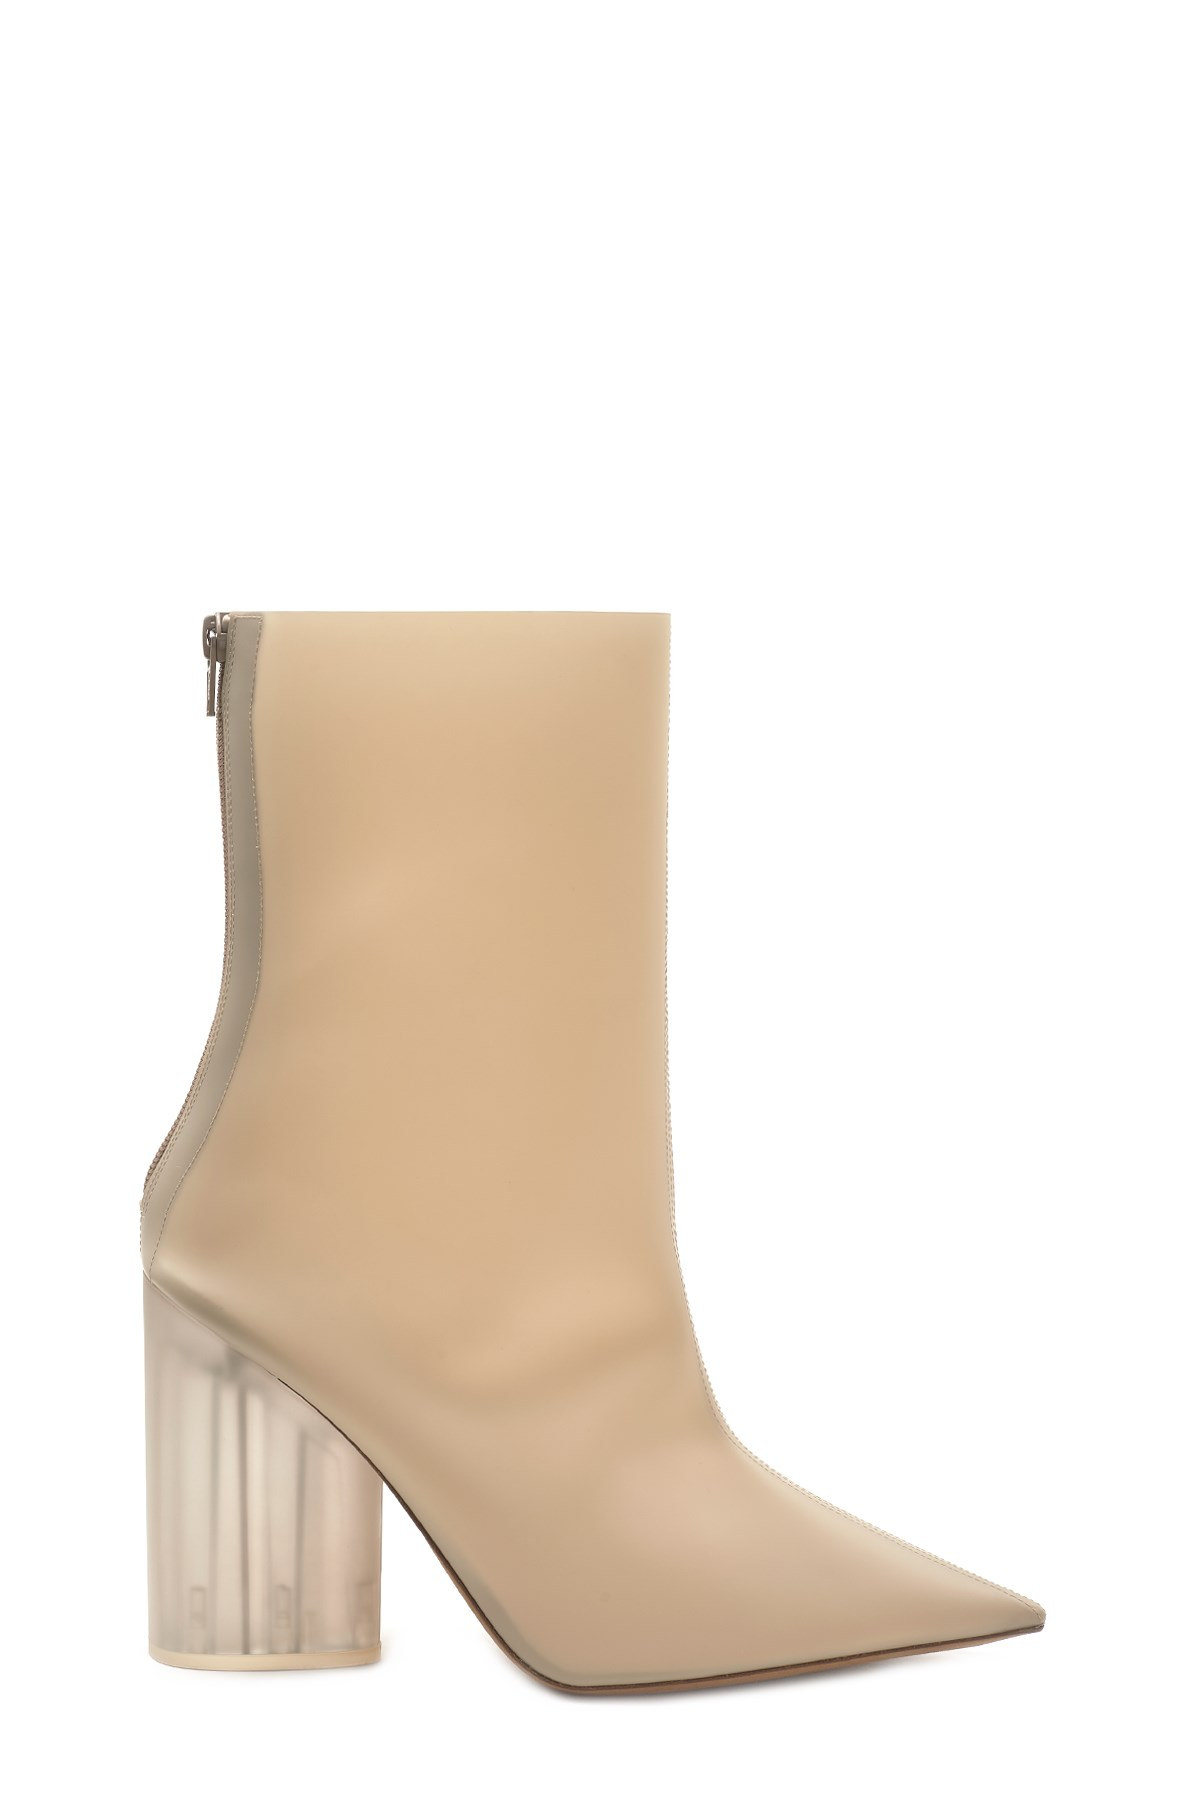 b3c93e869043 yeezy semi opaque ankle boots available on julian-fashion.com - 57904